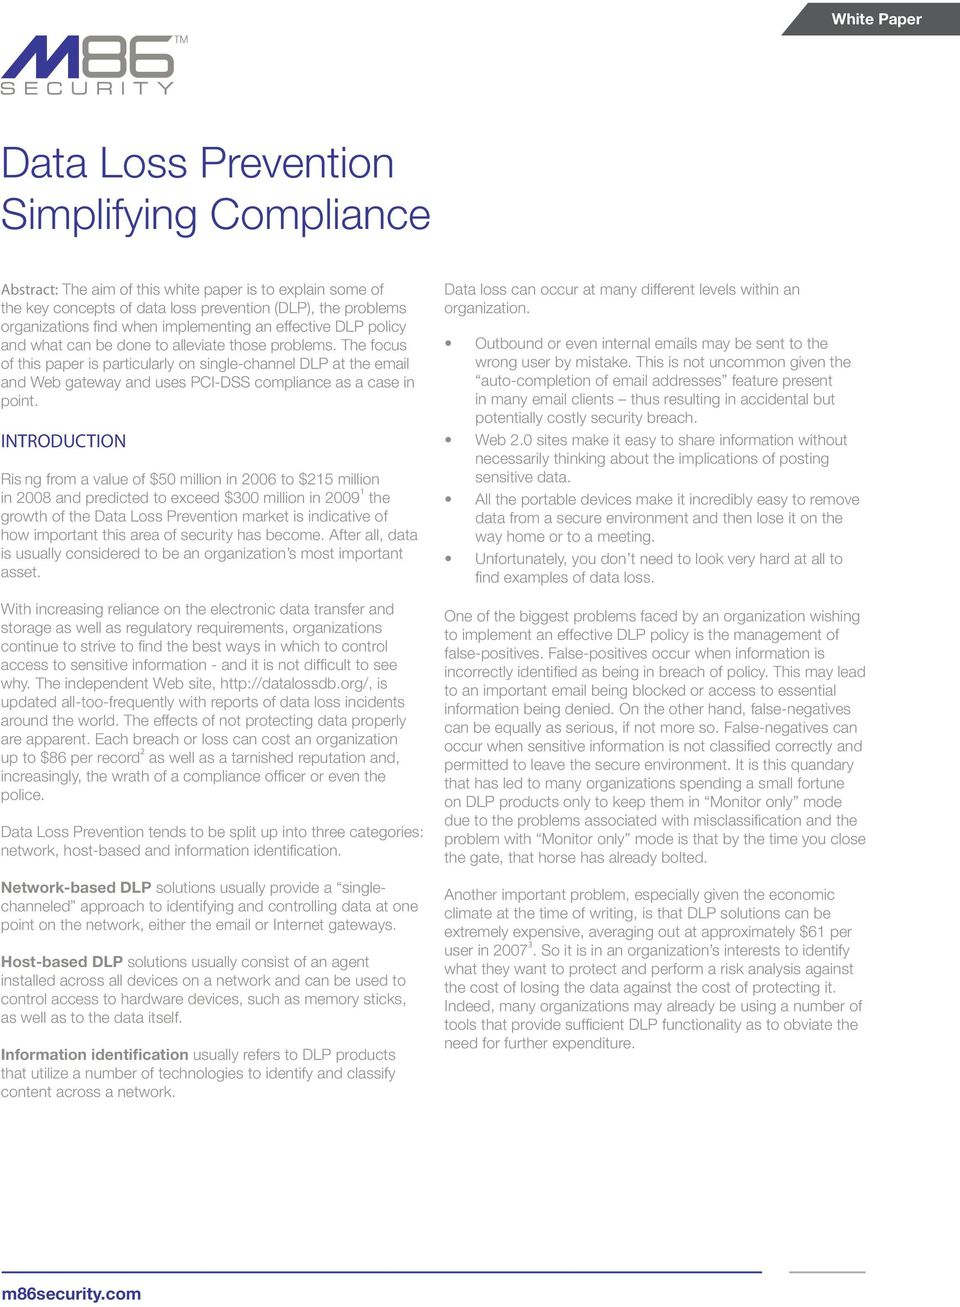 The focus of this paper is particularly on single-channel DLP at the email and Web gateway and uses PCI-DSS compliance as a case in point.